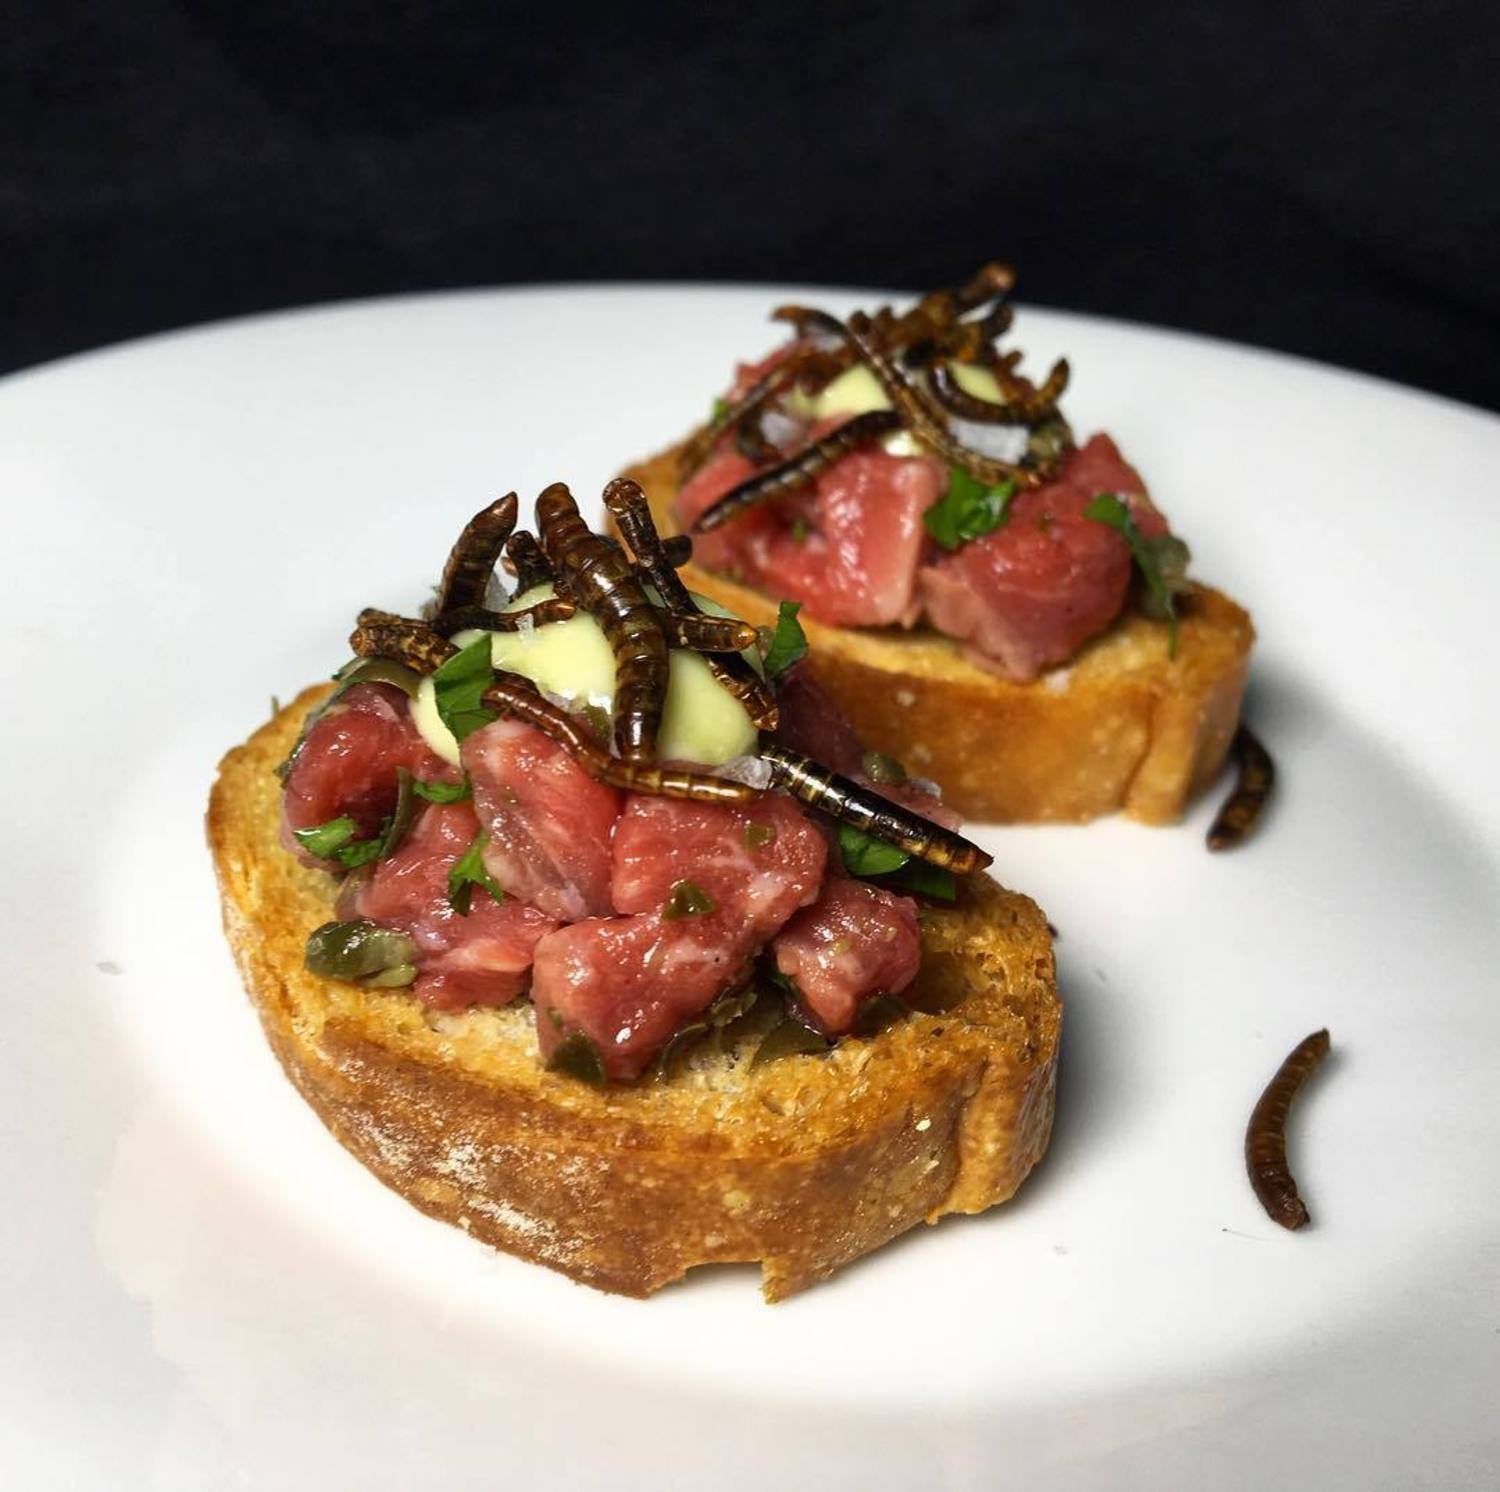 Come try these steak tartare crostinis with meal worms and wasabi aioli made by @dinnerecho at The Bug Banquet hosted by @thebugchef on Sat, Sept 2nd at @thebklynkitchen.